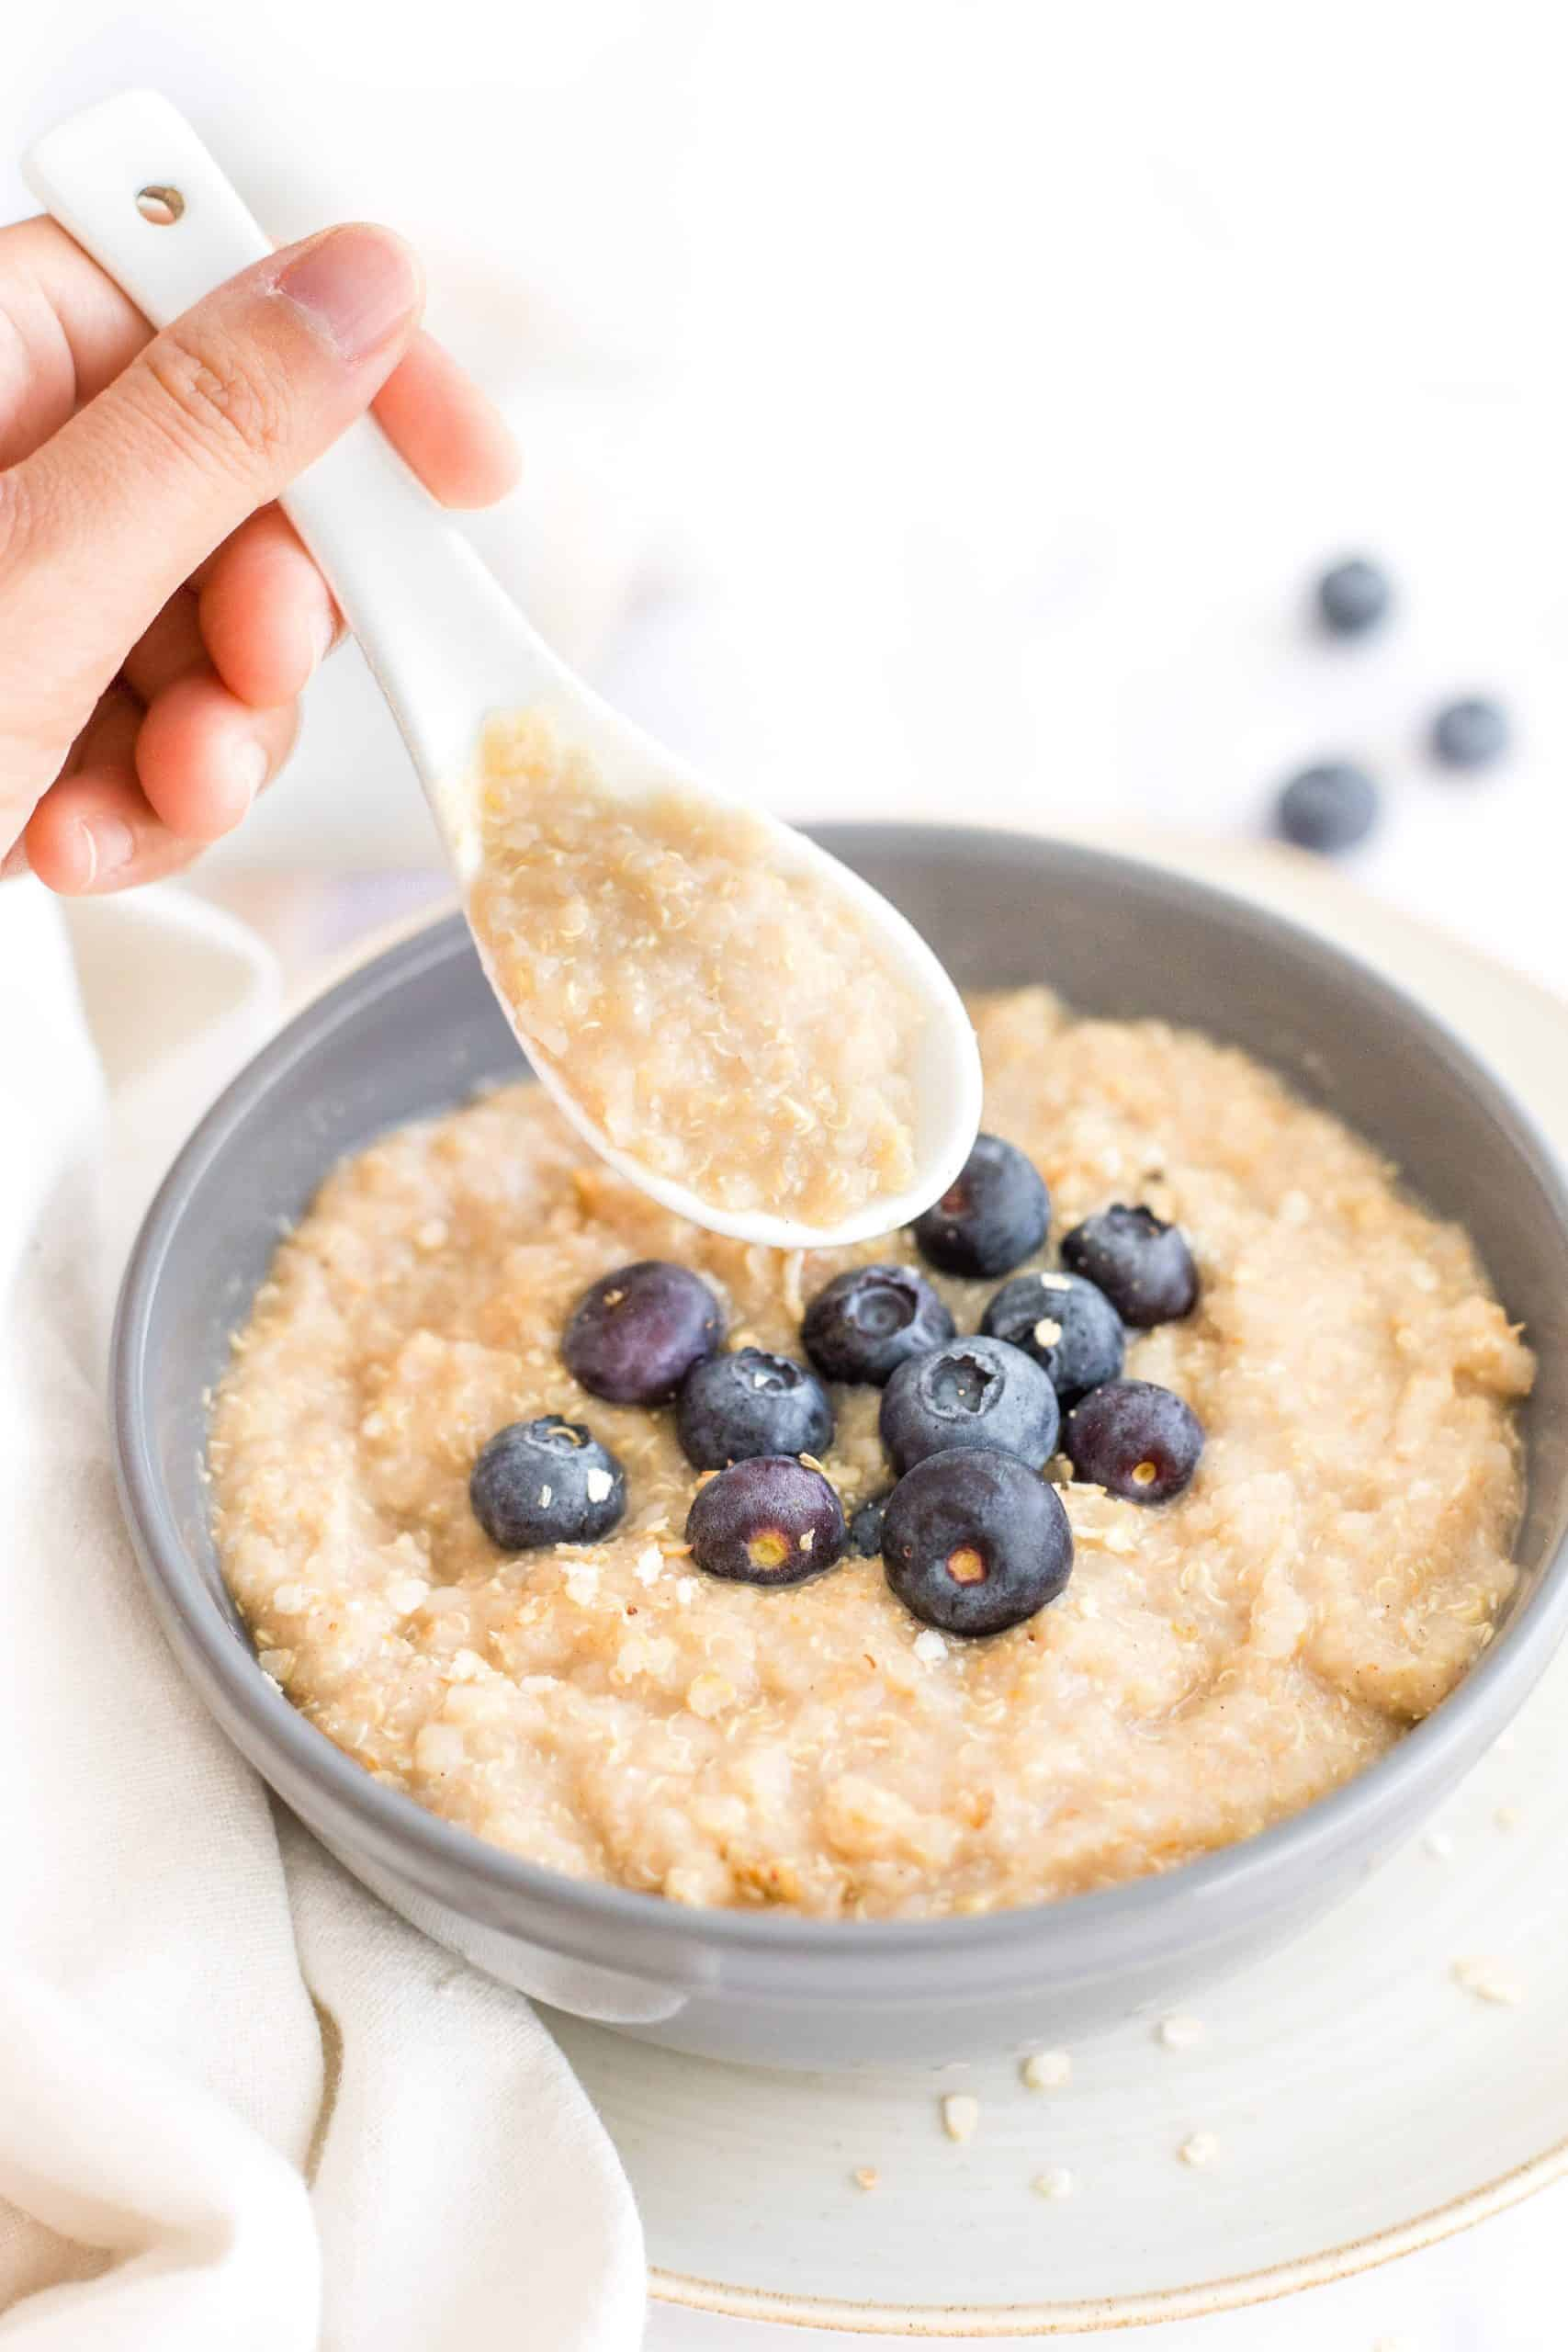 Holding up a spoonful of quinoa porridge from a bowl.